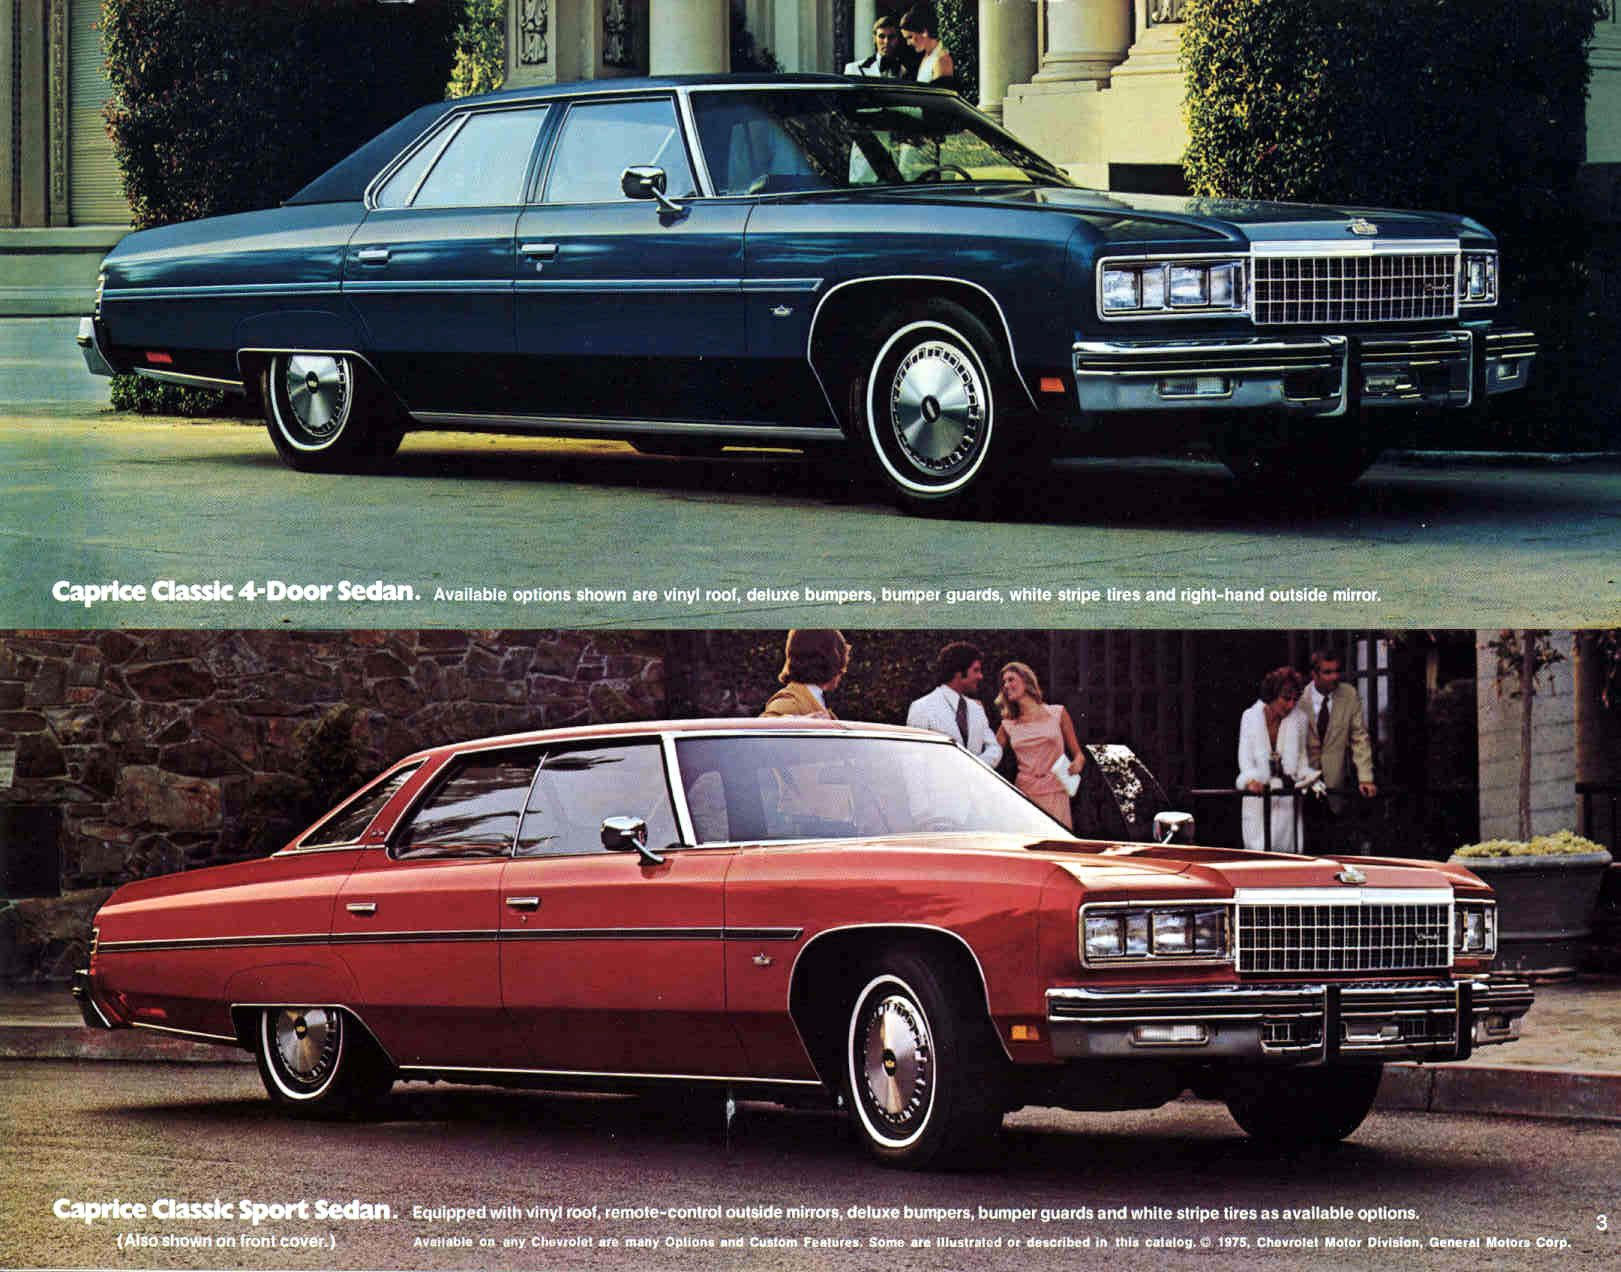 1976 Chevrolet Caprice Classic 4 Door Sedan And Sport Sedan Caprice Classic Chevrolet Caprice Chevrolet